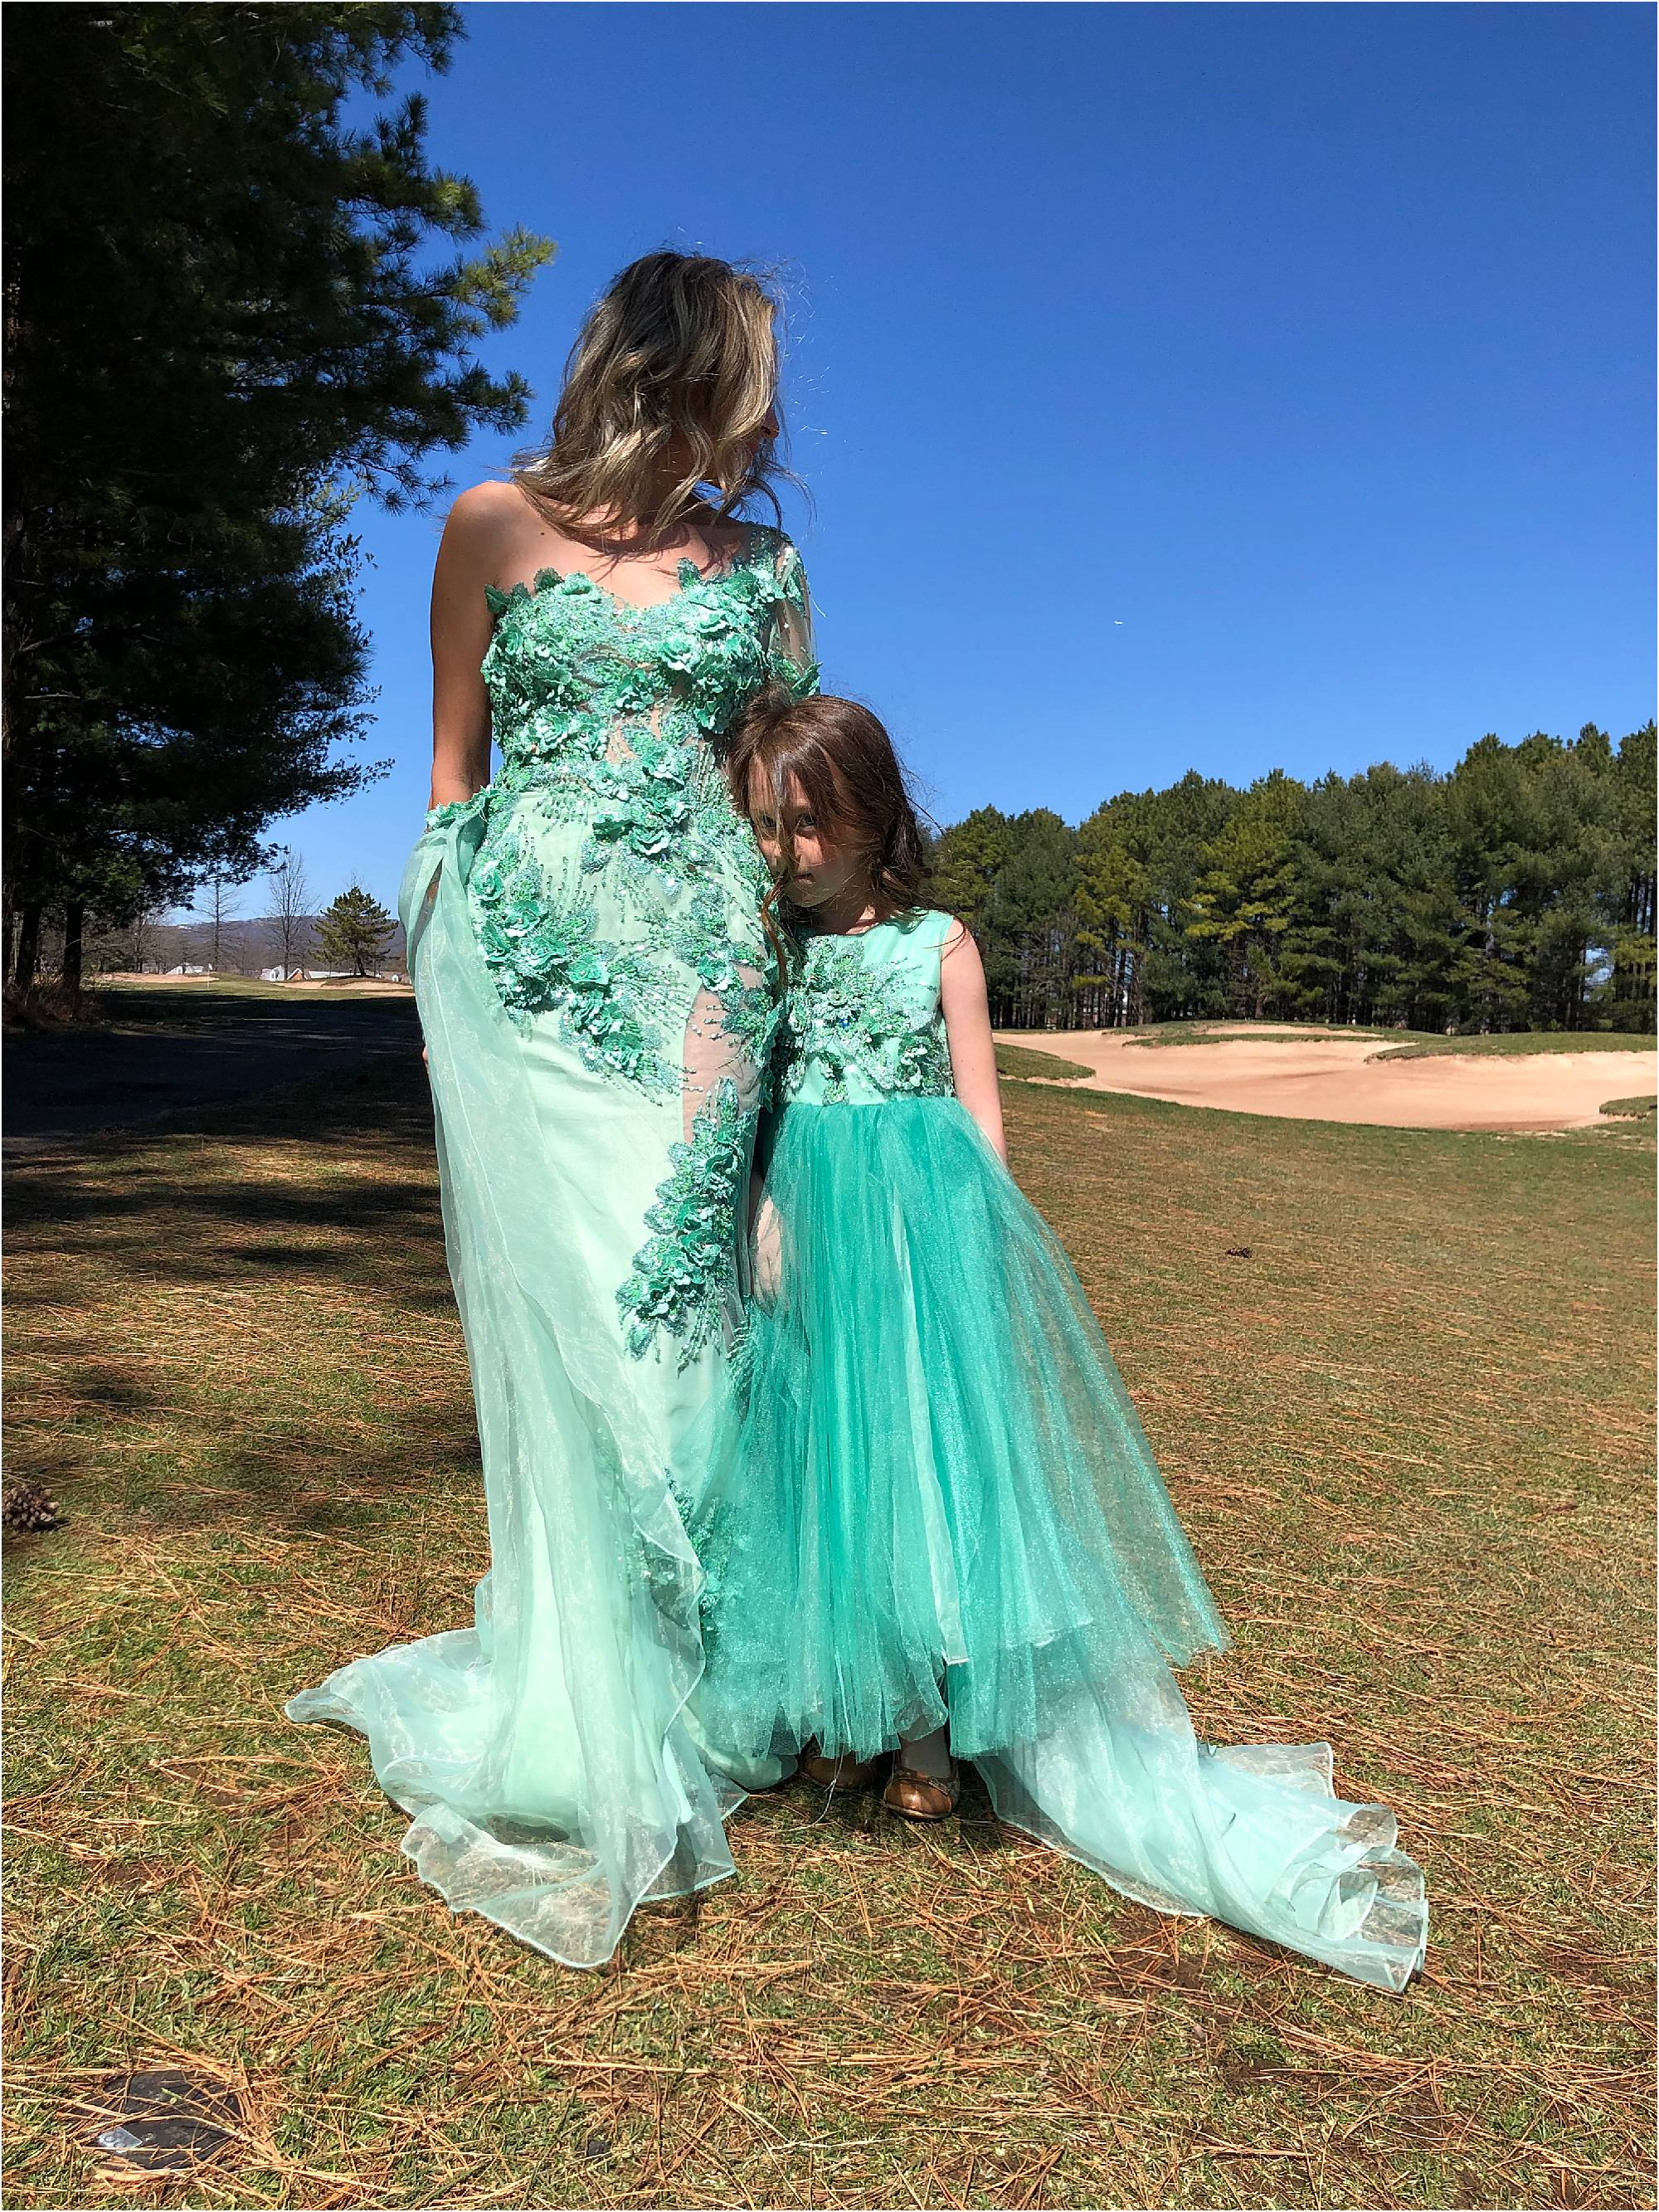 Didomenico Design Custom Mother Daughter Dresses L Mother Daughter Outfit Photos L Didomenico Design L Kelsy Dominick Mother Daughter Fashion Photo 0006 Didomenico Design,Middle Aged Outdoor Wedding Summer Wedding Guest Dresses